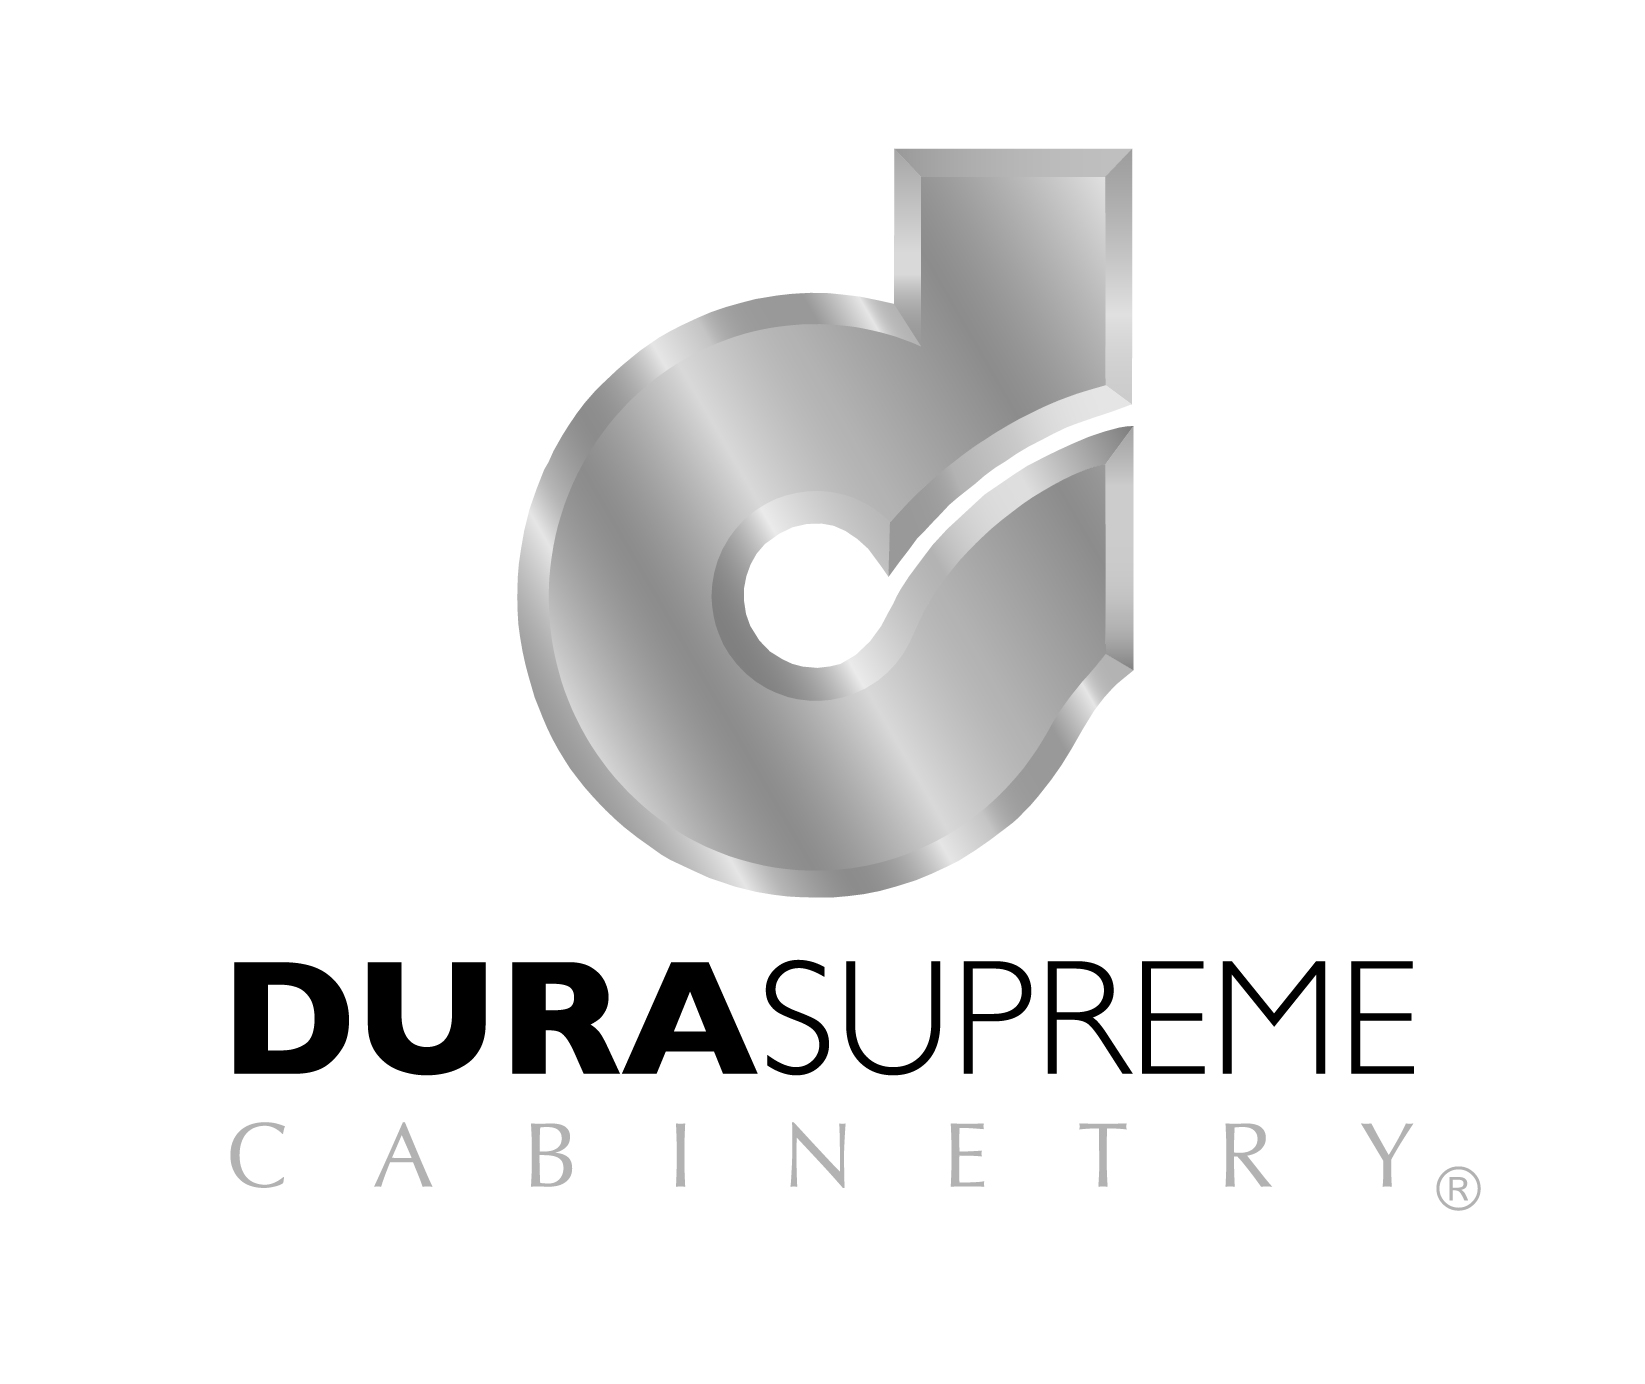 Dura Supreme Cabinetry logo white Columbus remodeling